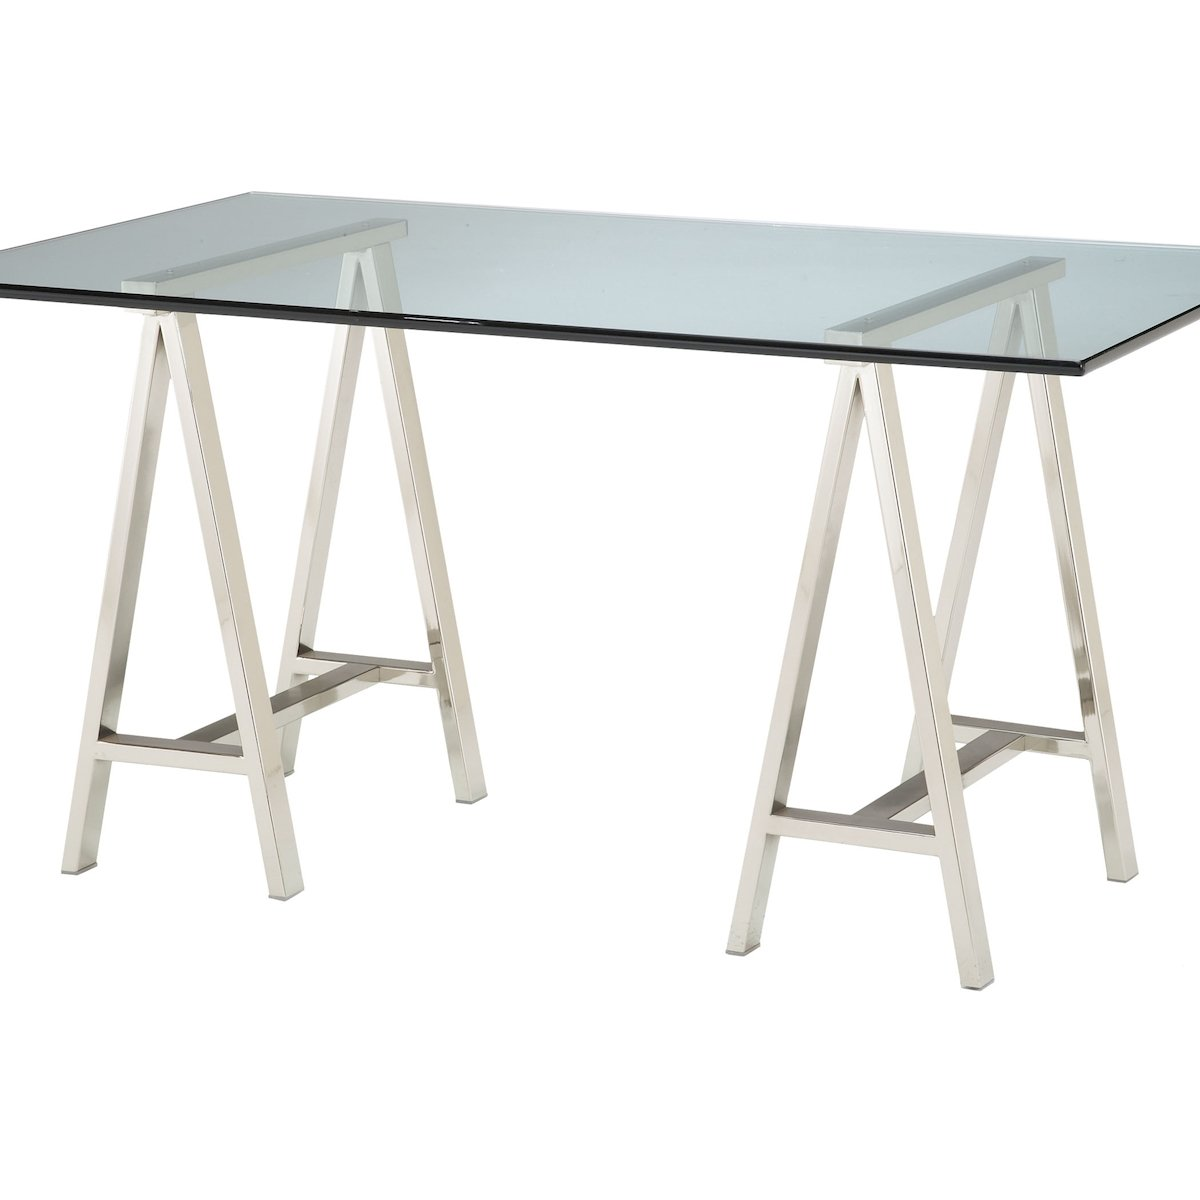 architects table base polished nickel sterling architect threshold margate accent narrow oak tablecloth for small rectangular buffet ikea orient lighting coffee fold top party